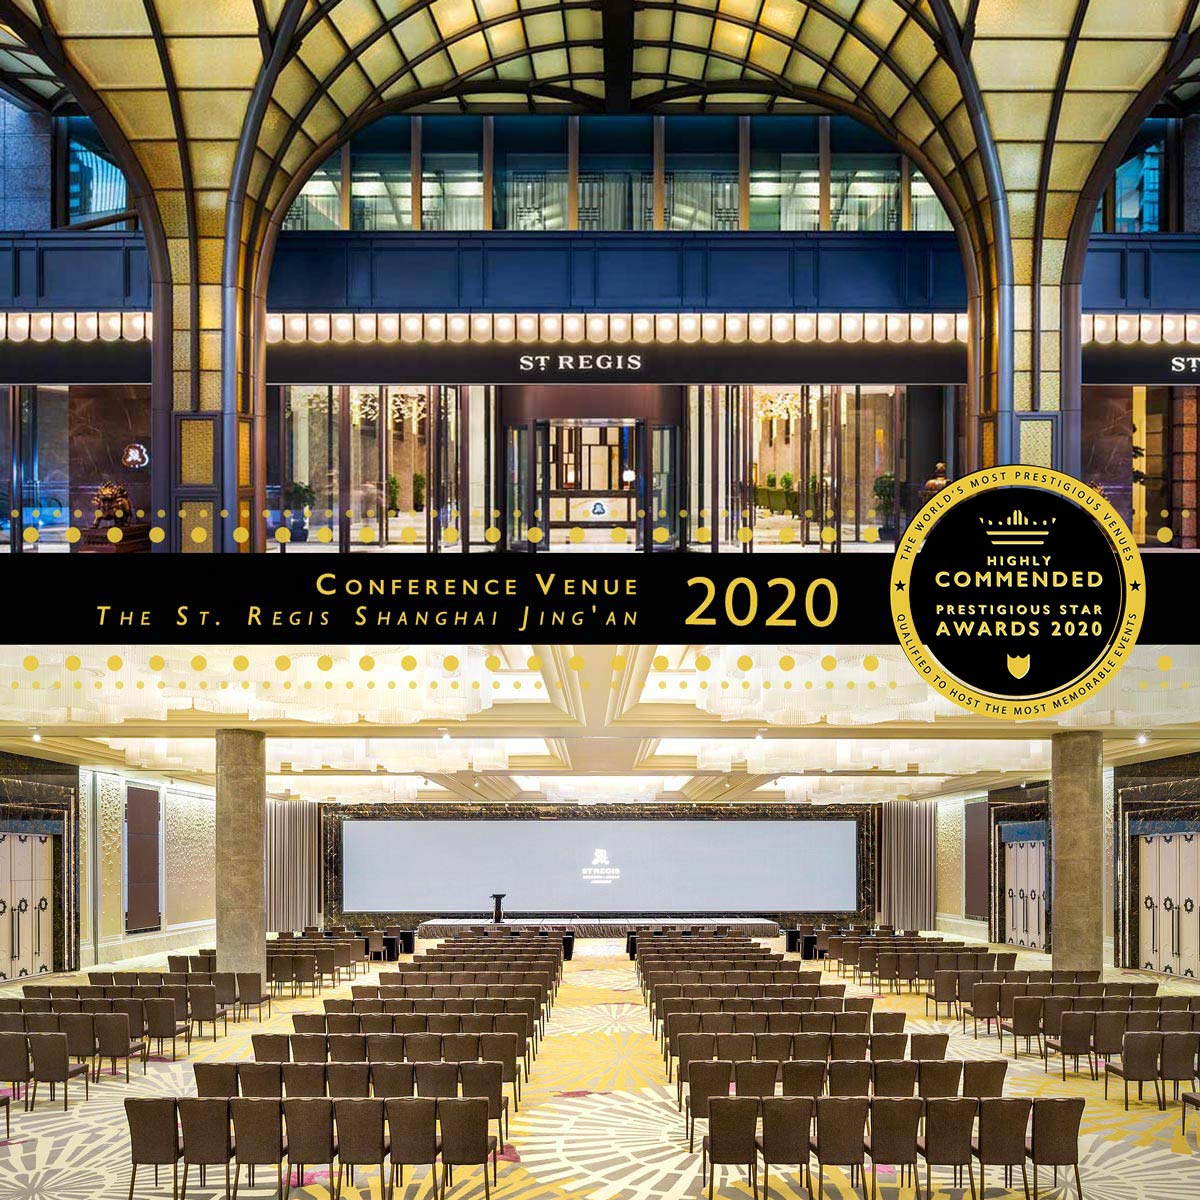 Astor Ballroom at The St. Regis Shanghai Jingan